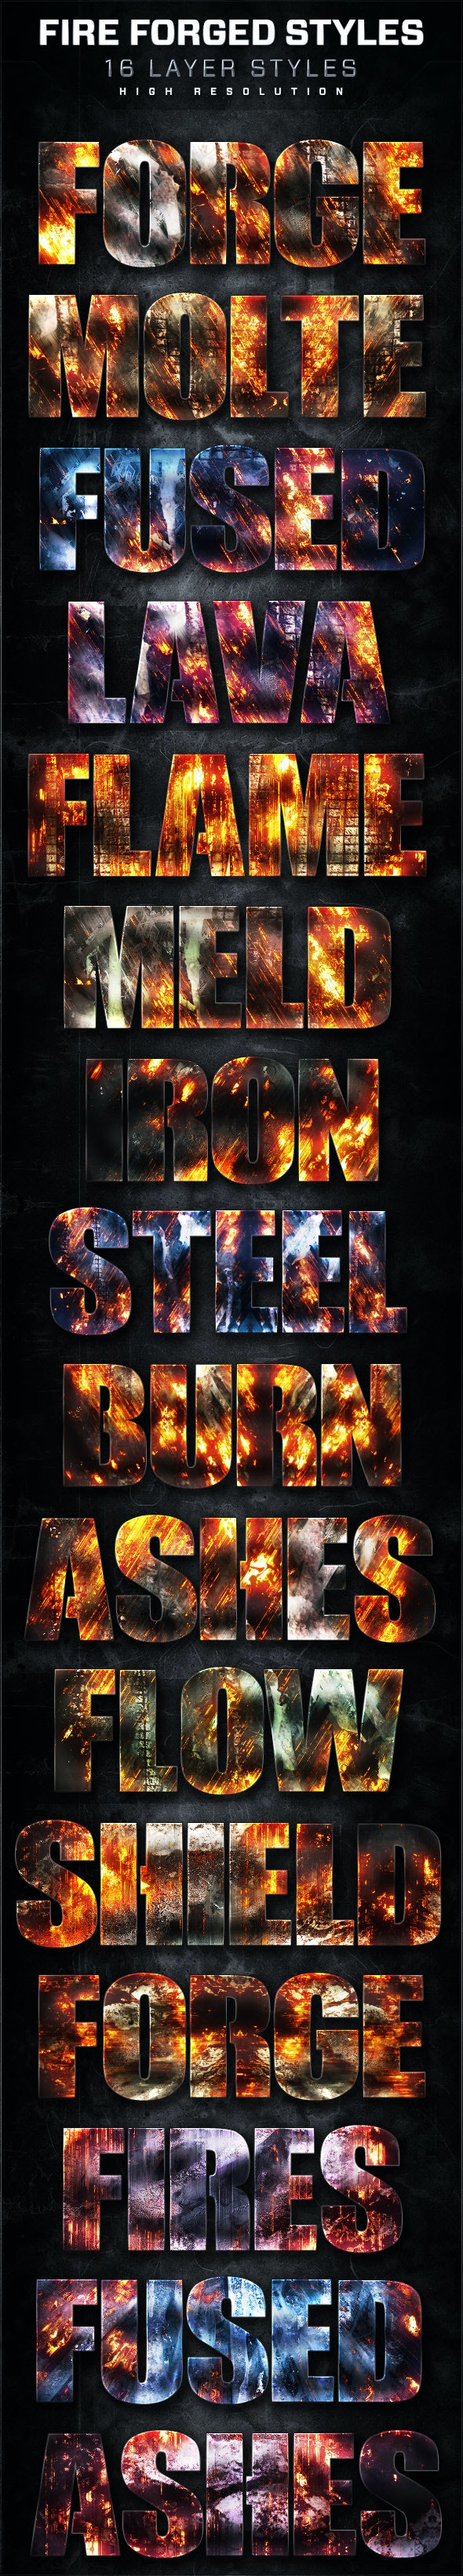 16 Fire Forged Layer Styles Volume 4 - Text Effects Styles